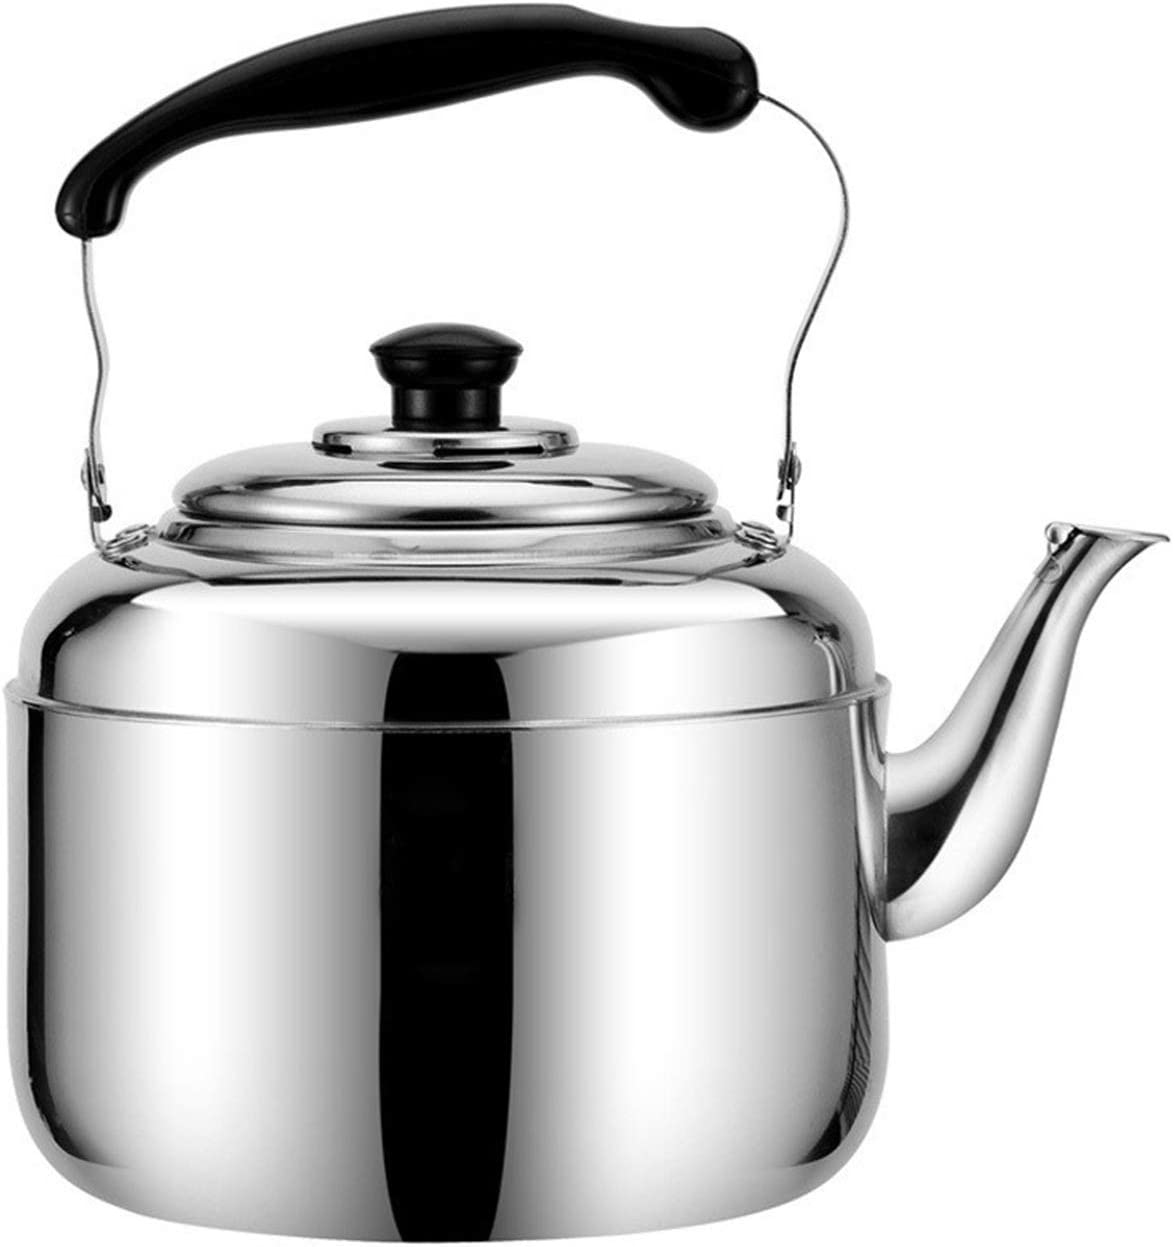 Doormat Tea Kettle Max 83% OFF for top Stainless Stove Steel Minneapolis Mall